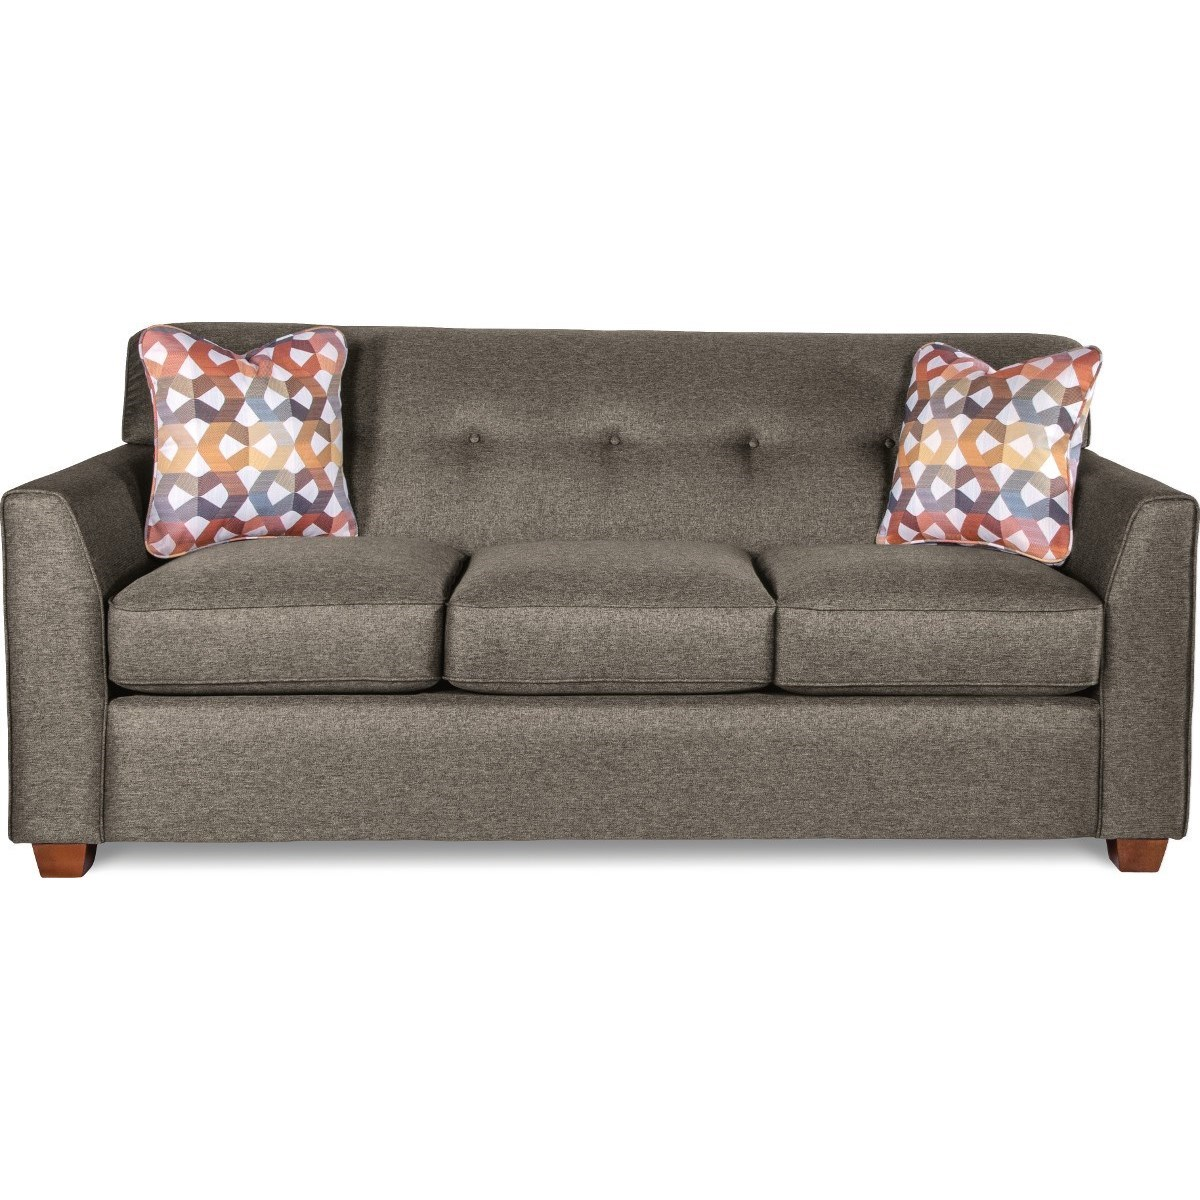 Contemporary Tufted Apartment Sleeper Sofa with Premier ComfortCore Cushions